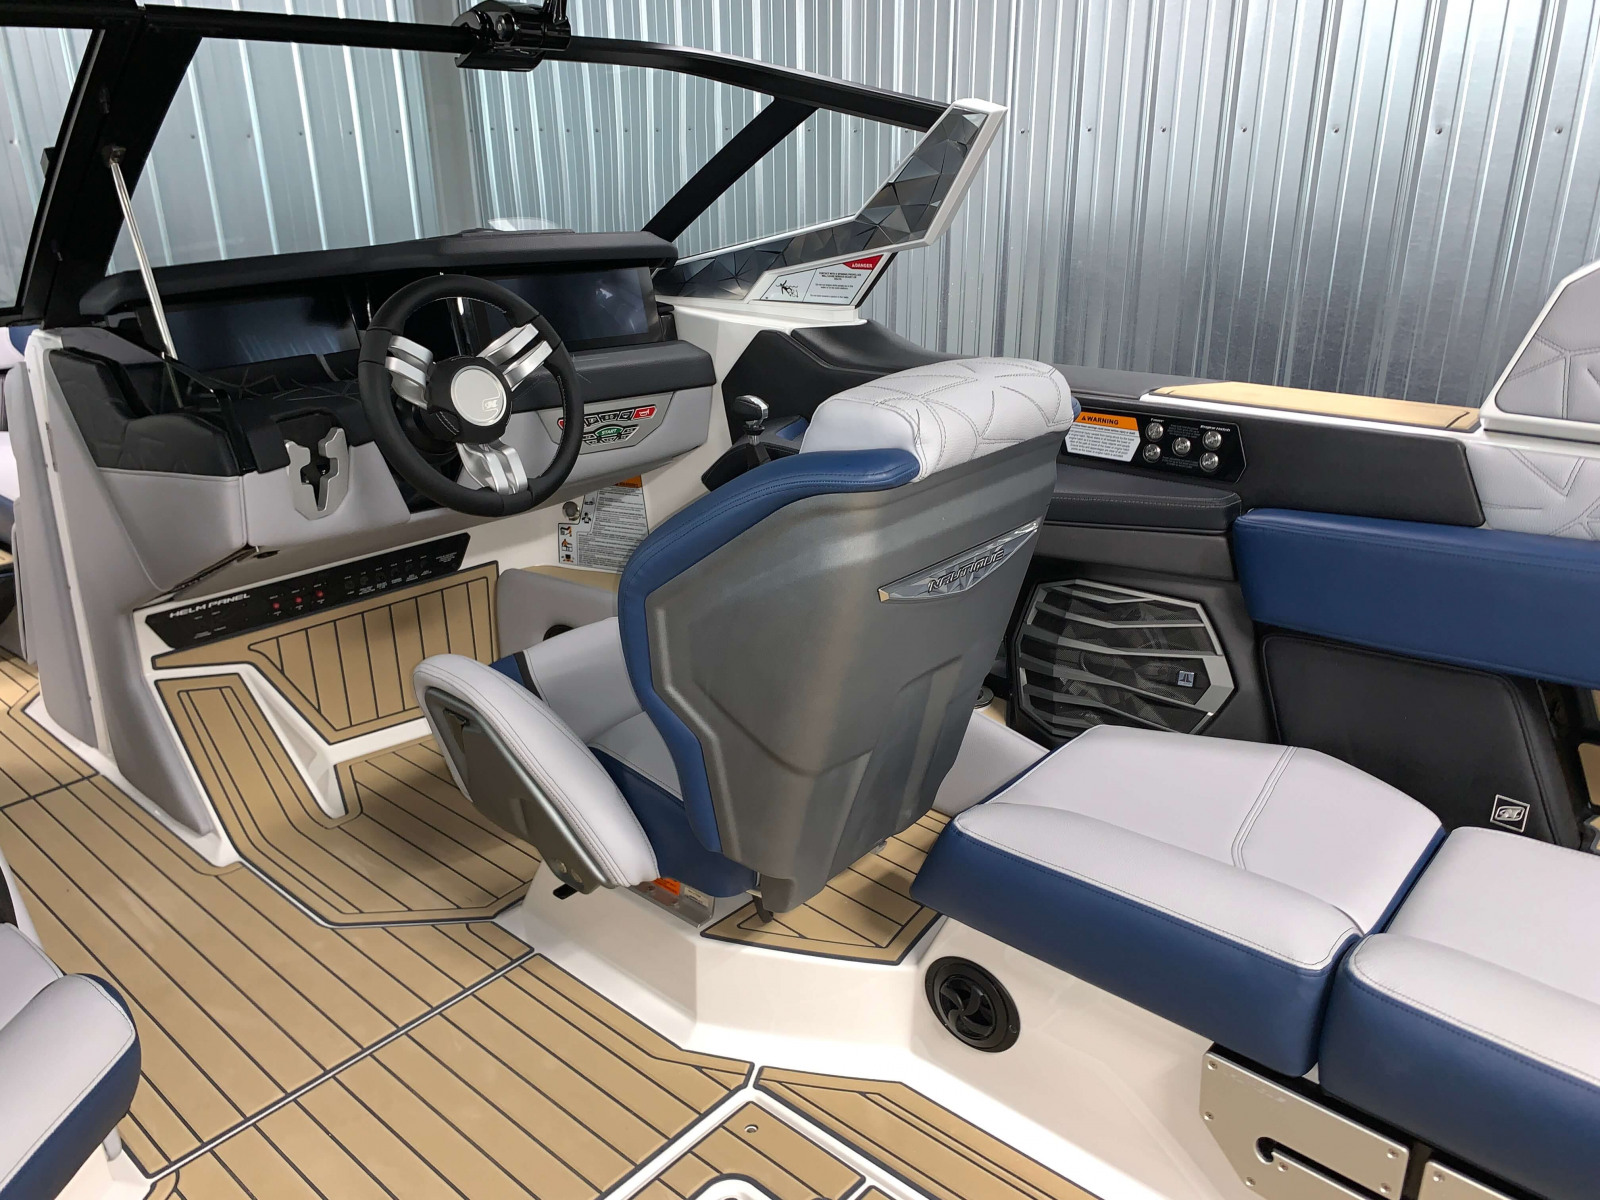 2021-Nautique-Paragon-25-Wake-Boat-Helm-1